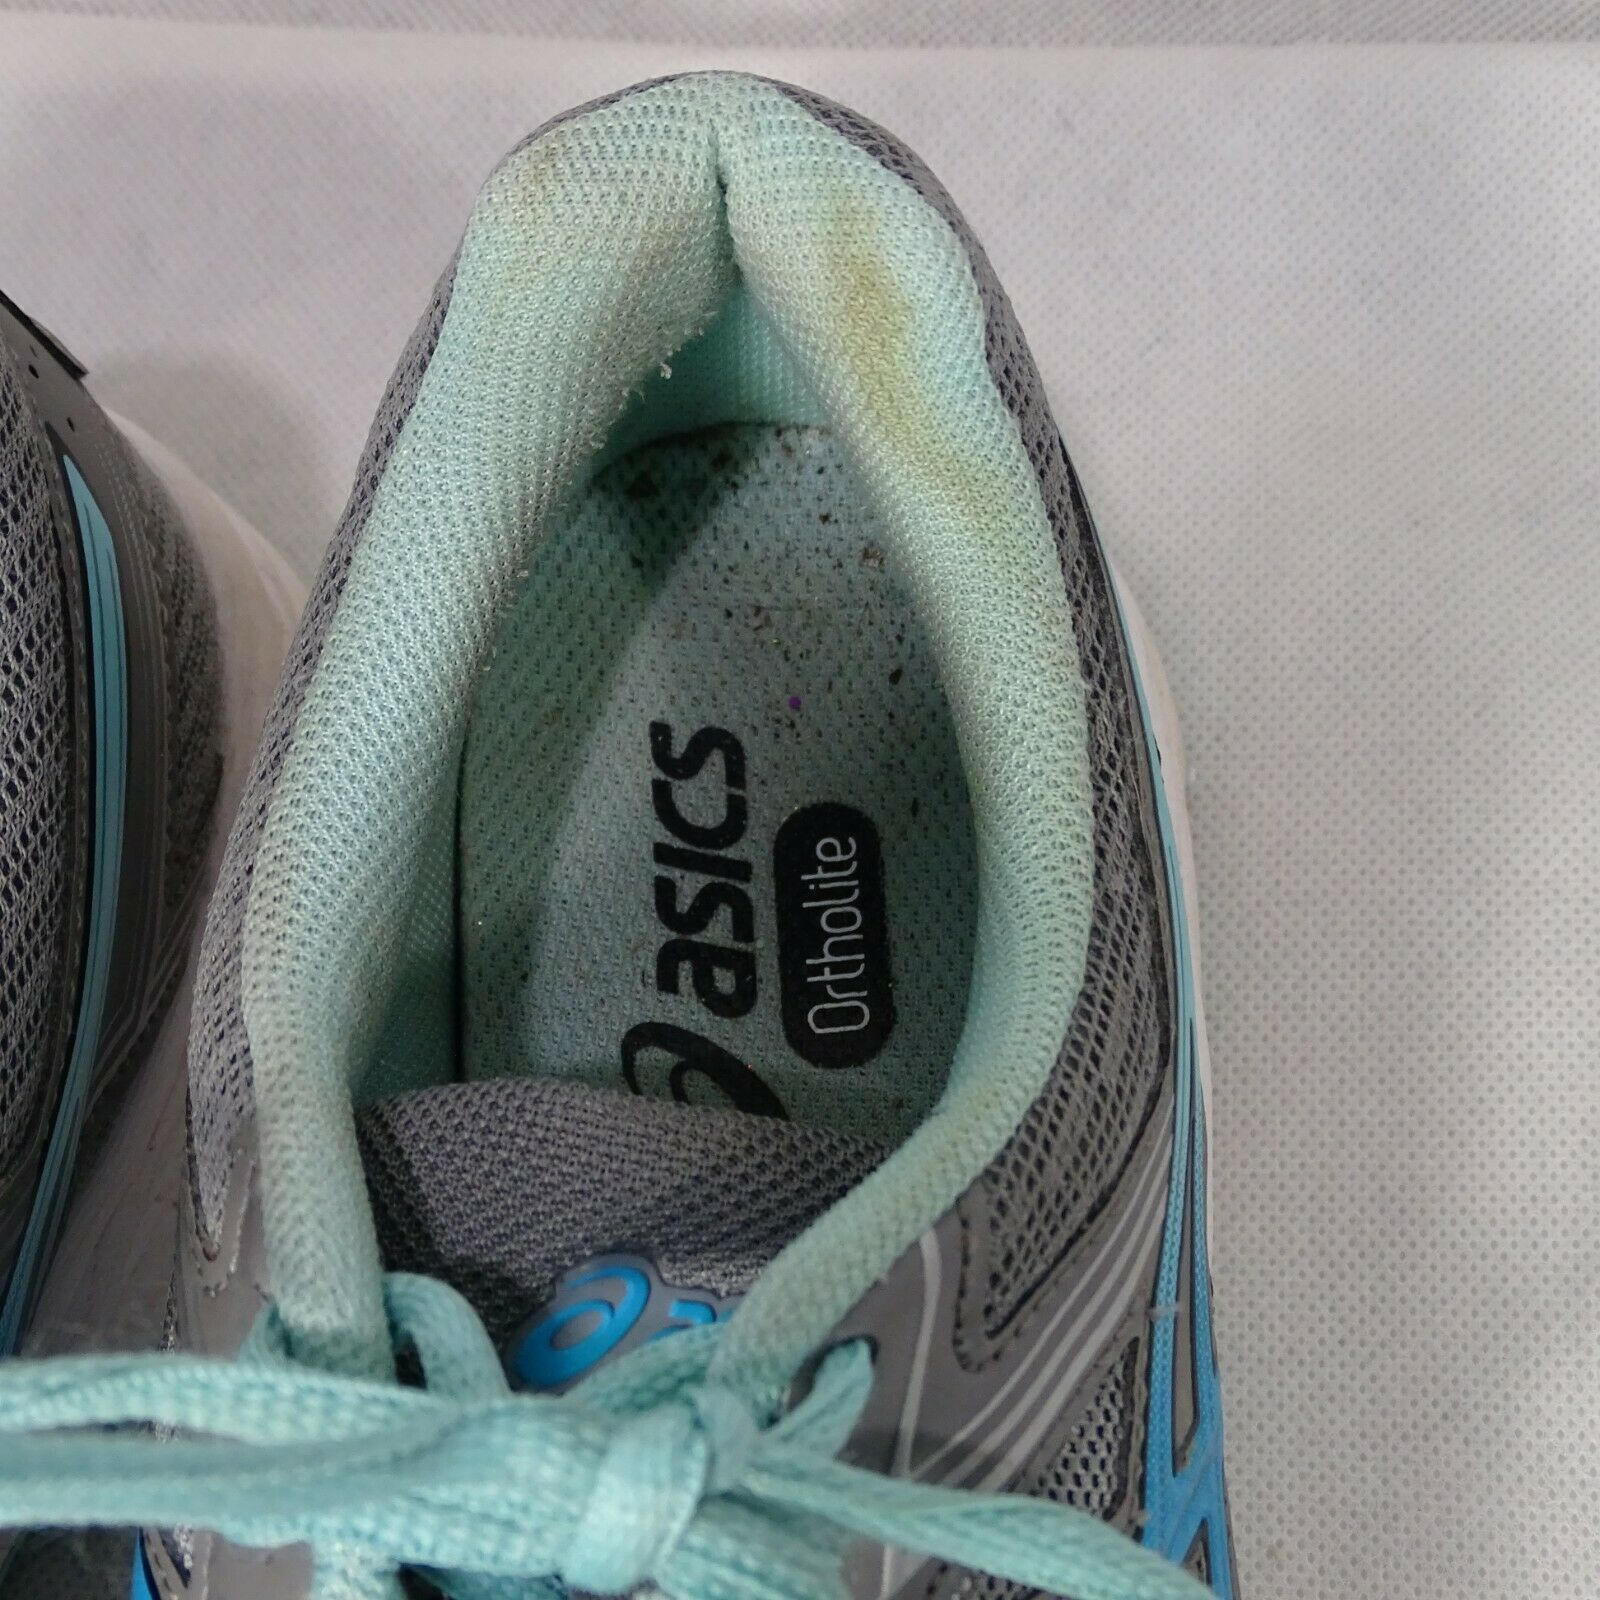 Asics Gel-Contend 4 Ortholite Sneakers Shoes Mesh Women Size 7 Gray Blue T767Q